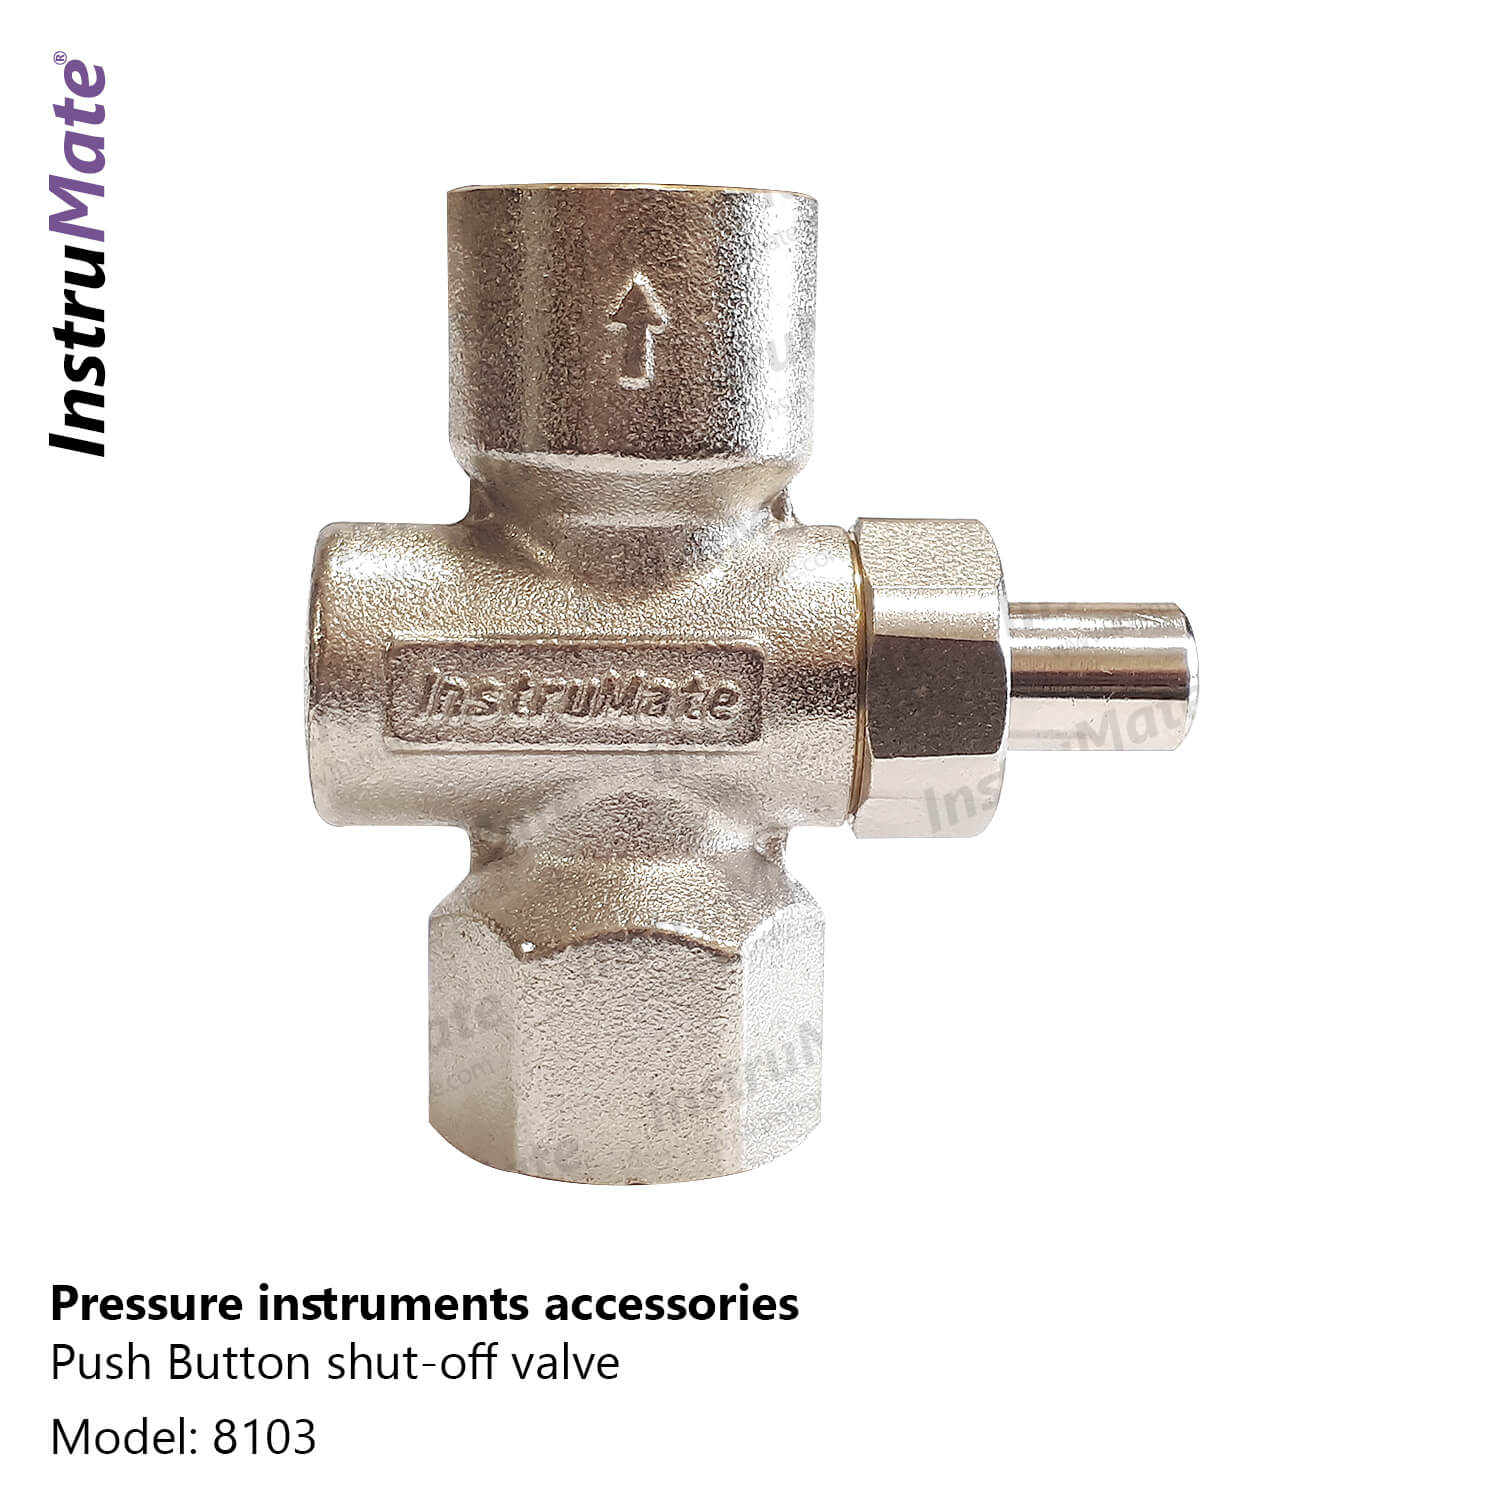 Push button shut-off valve - 8103 - Instrumate